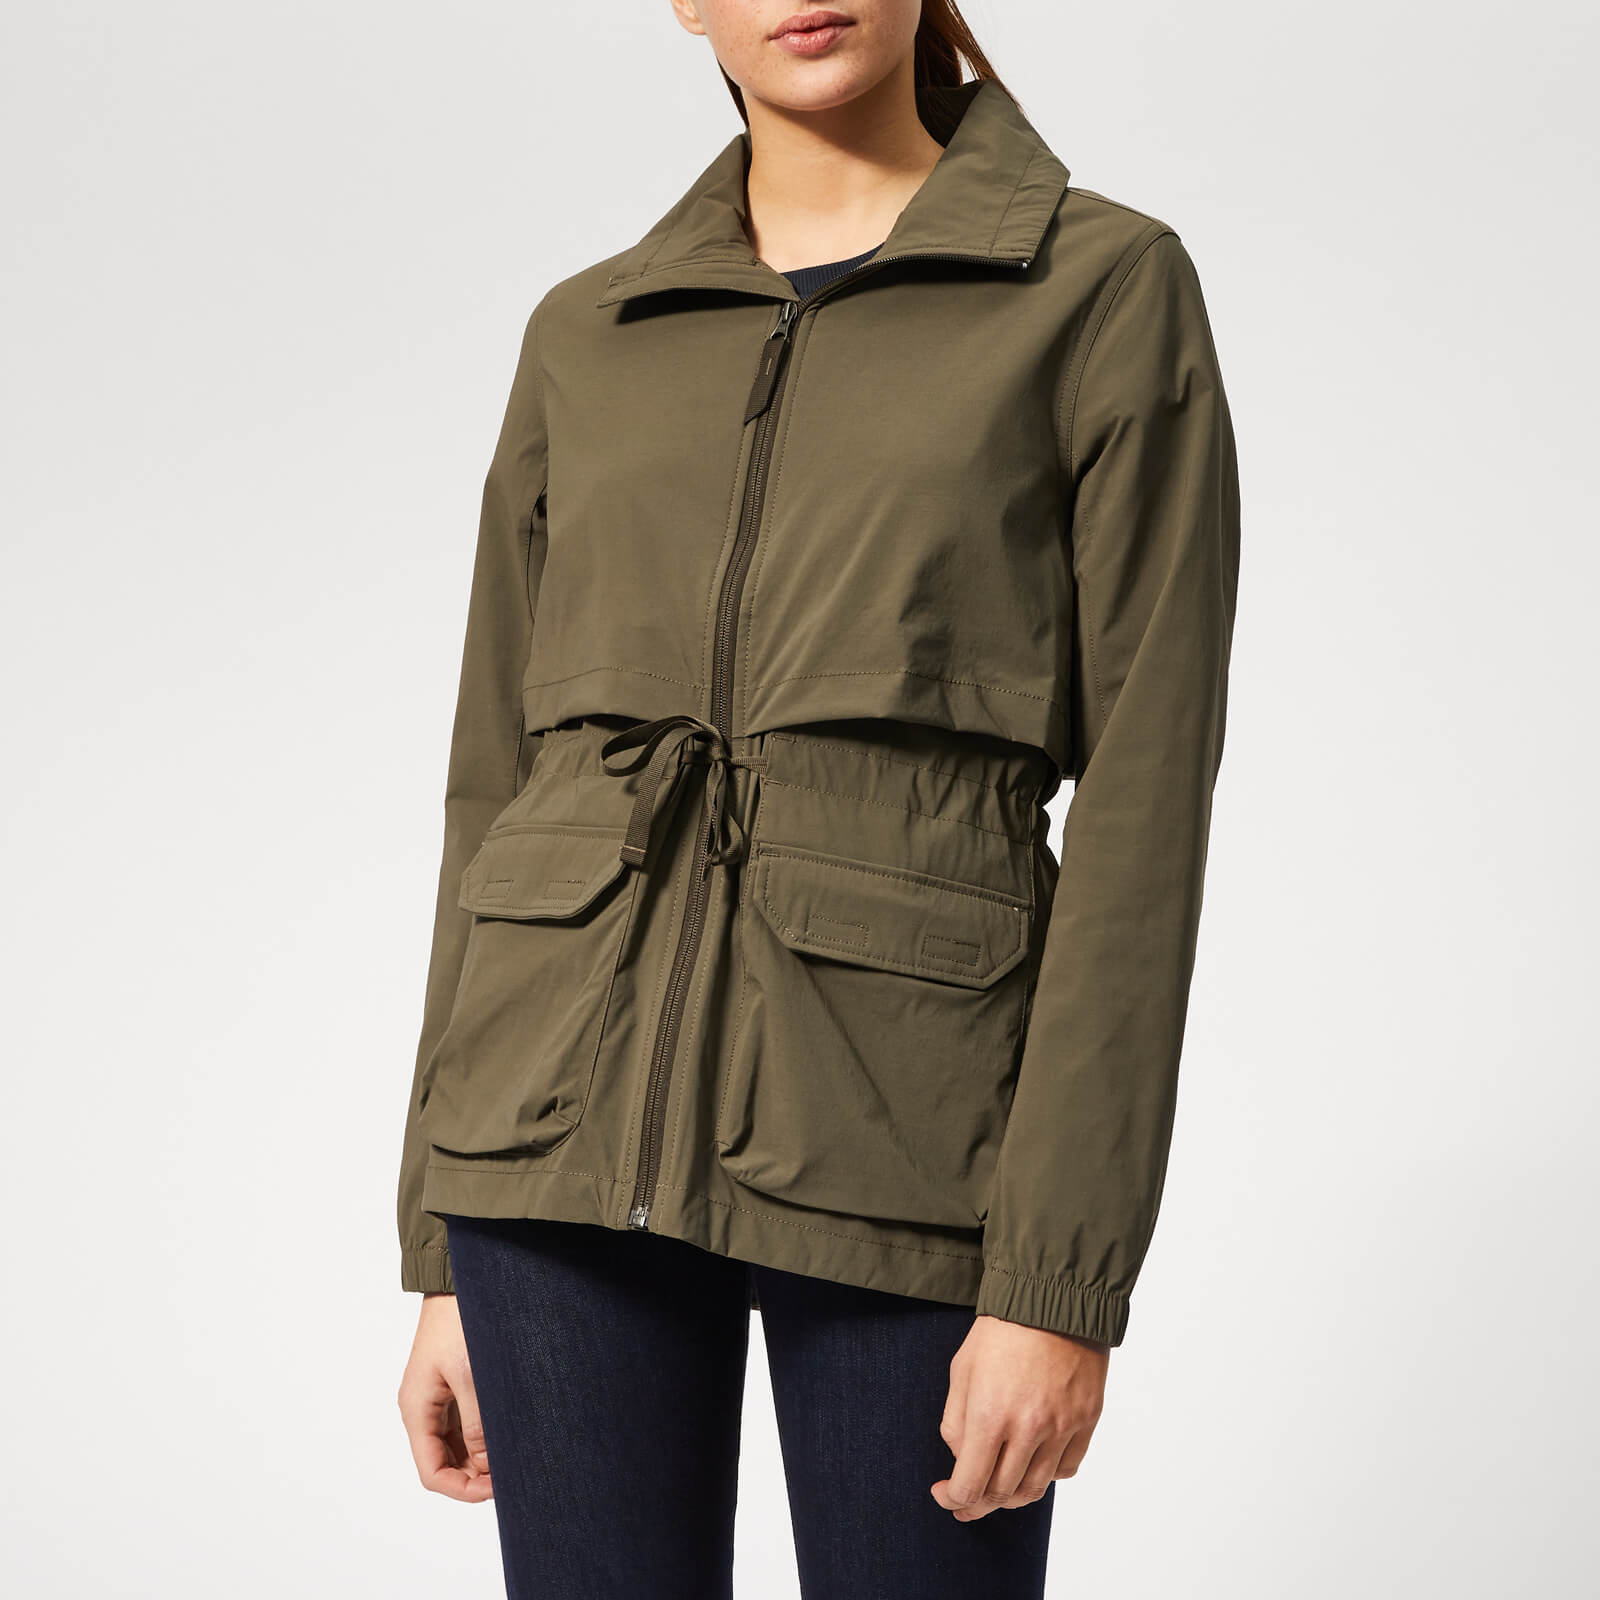 d2bb2a908 The North Face Women's Sightseer Jacket - New Taupe Green